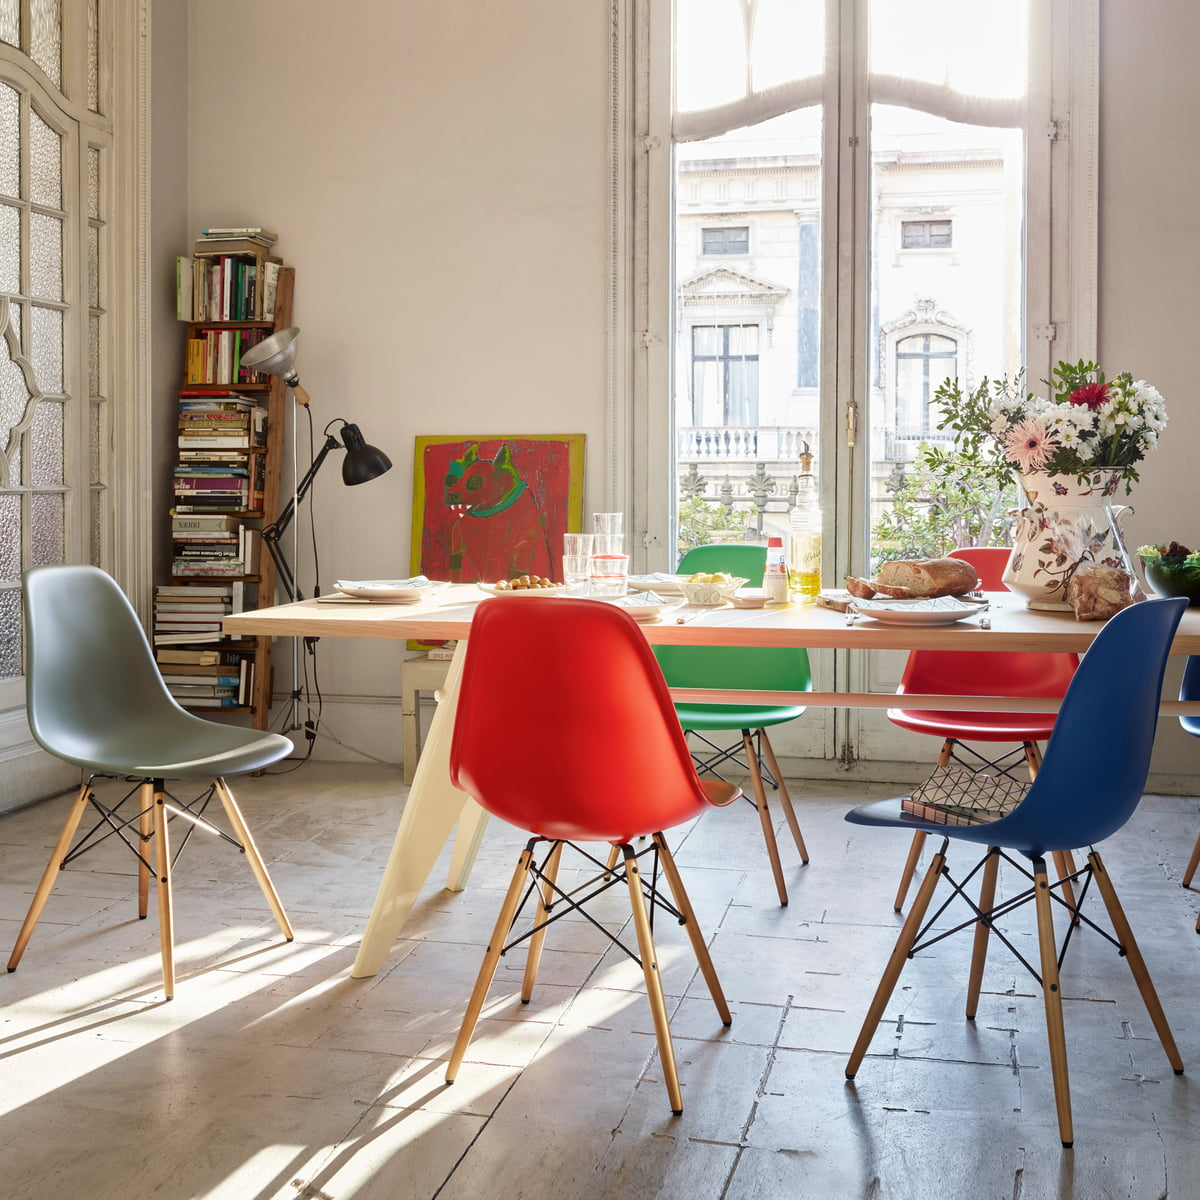 Eames Plastic Chair DSW With Colourful Seats